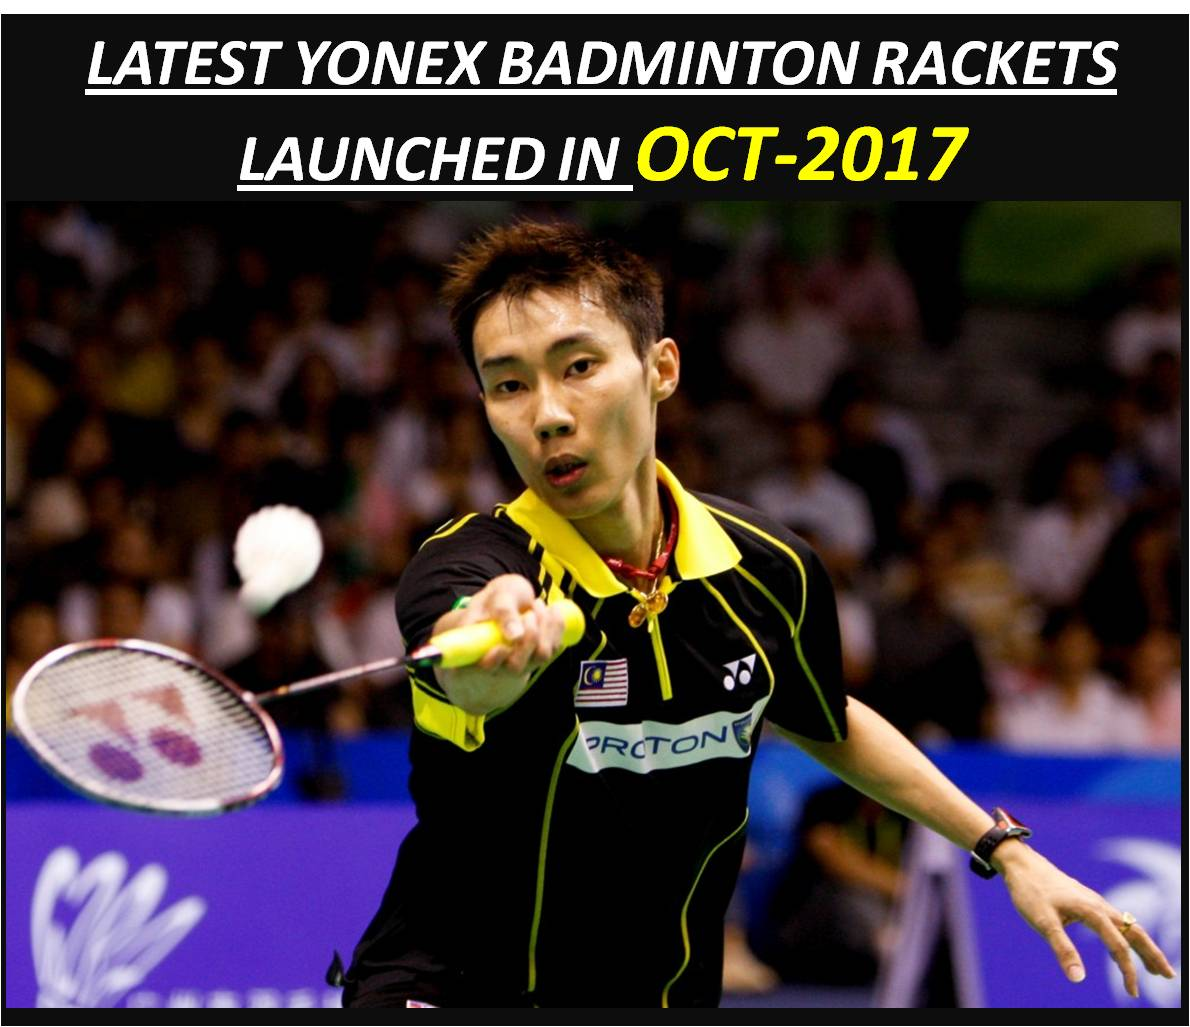 LATEST YONEX BADMINTON RACKET LAUNCHED IN OCT 2017